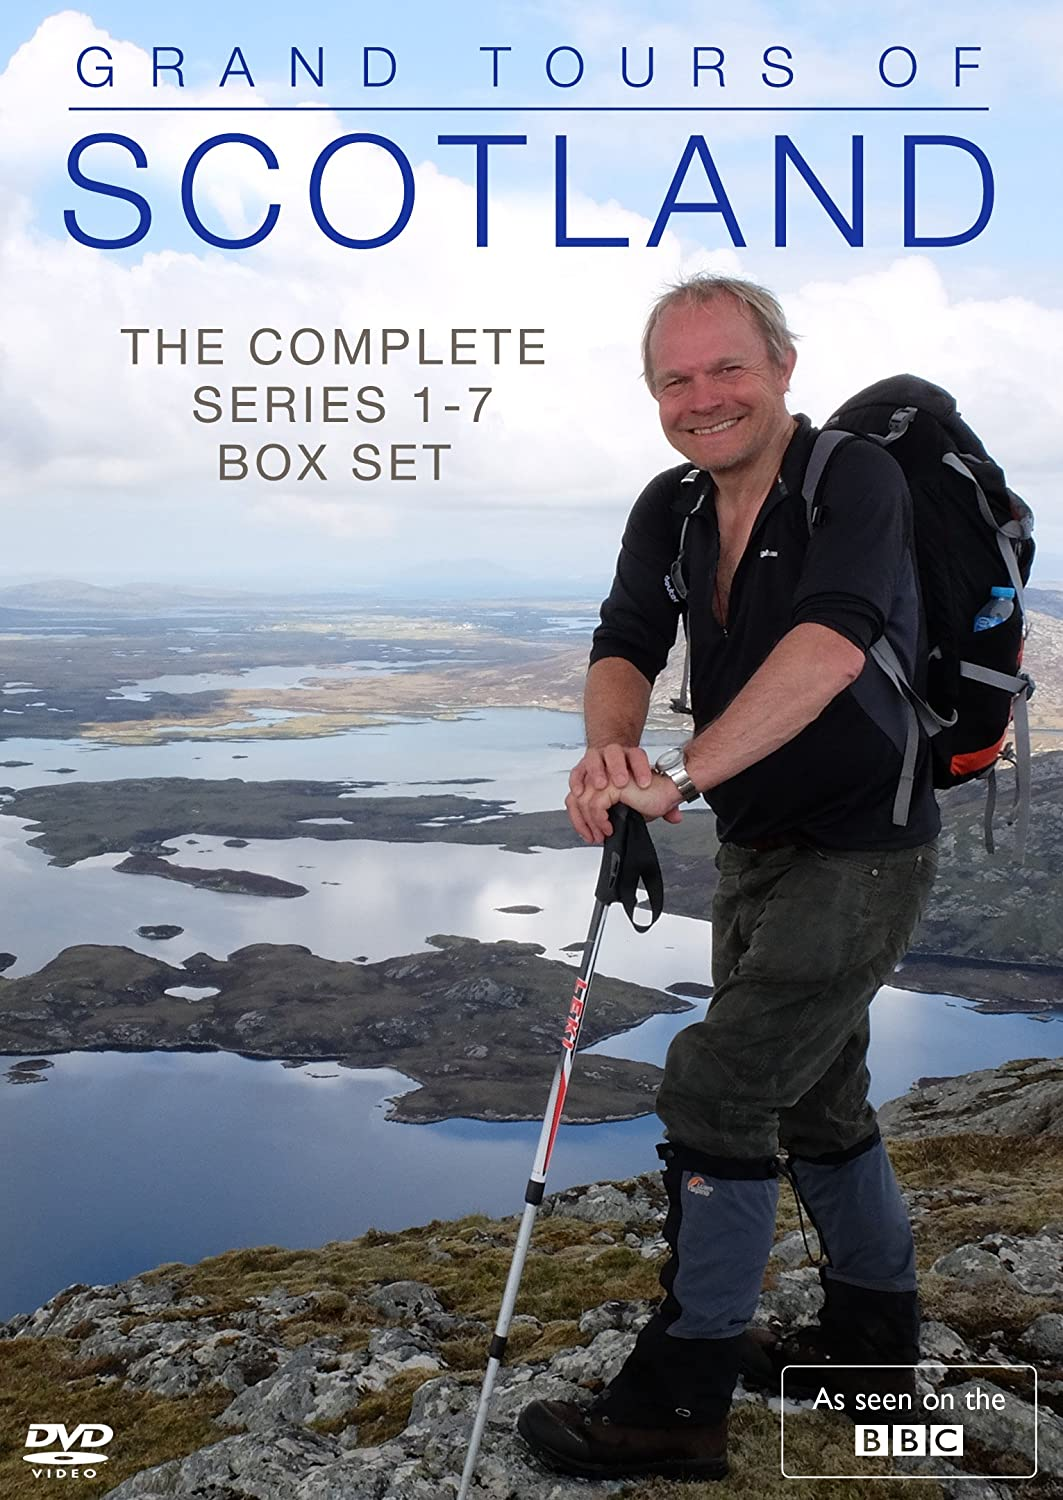 Grand Tours of Scotland: Complete Series 1-7